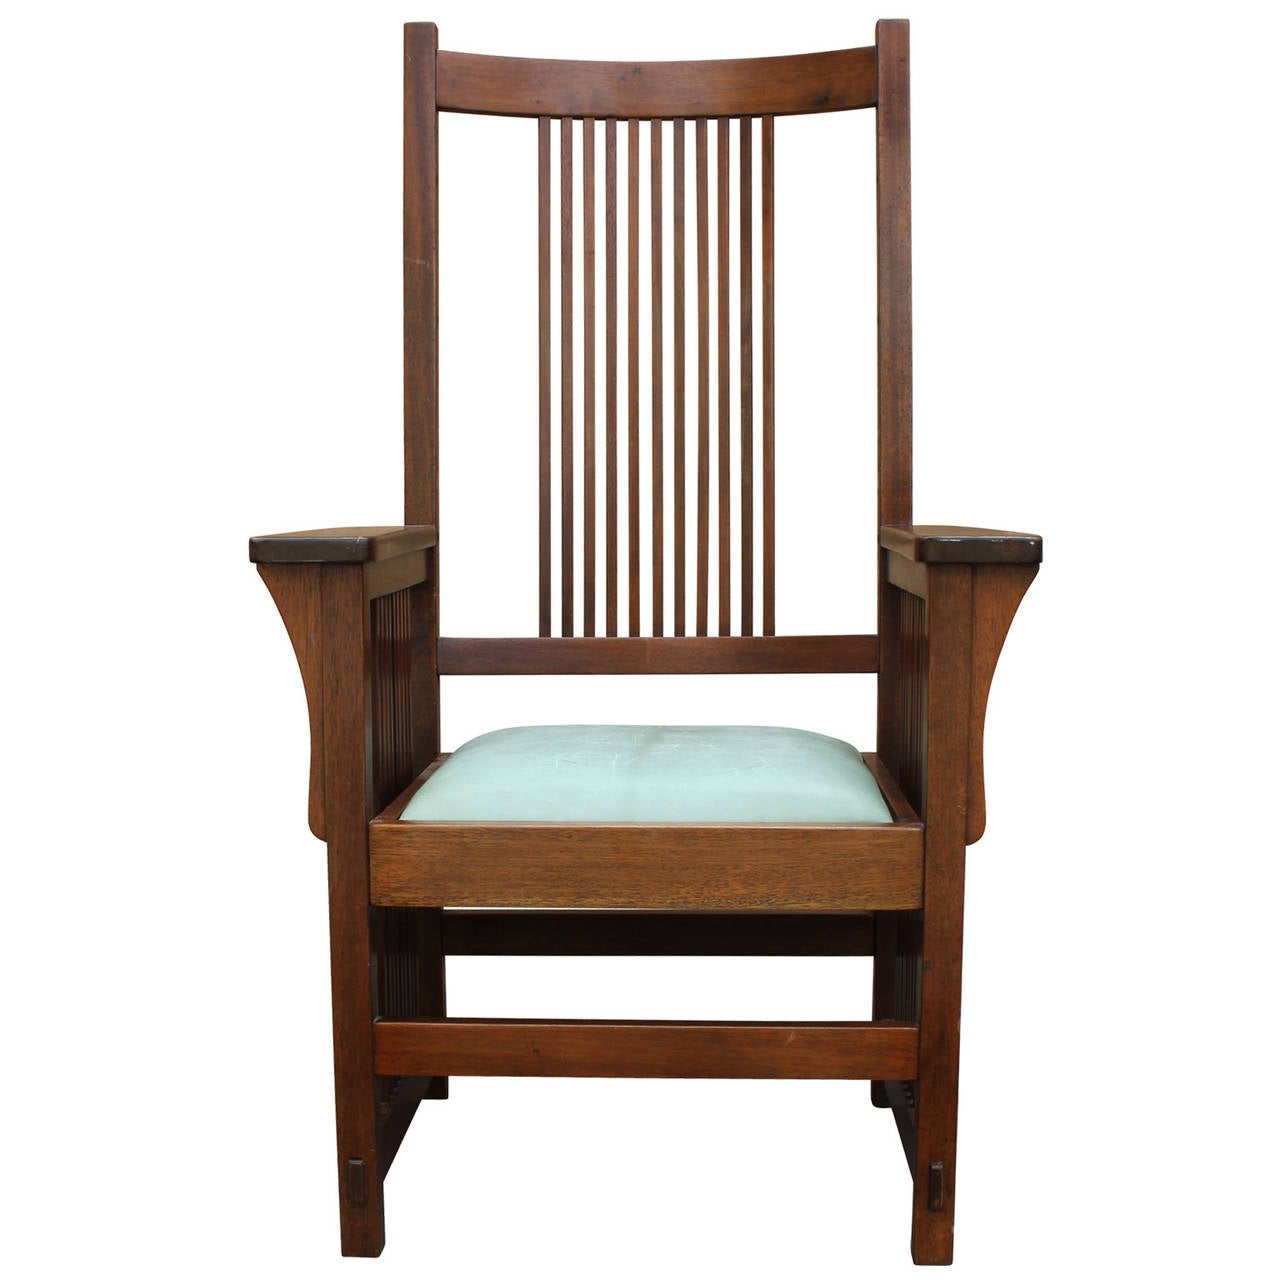 Frank Lloyd Wright Chairs Frank Lloyd Wright Style Armchair At 1stdibs